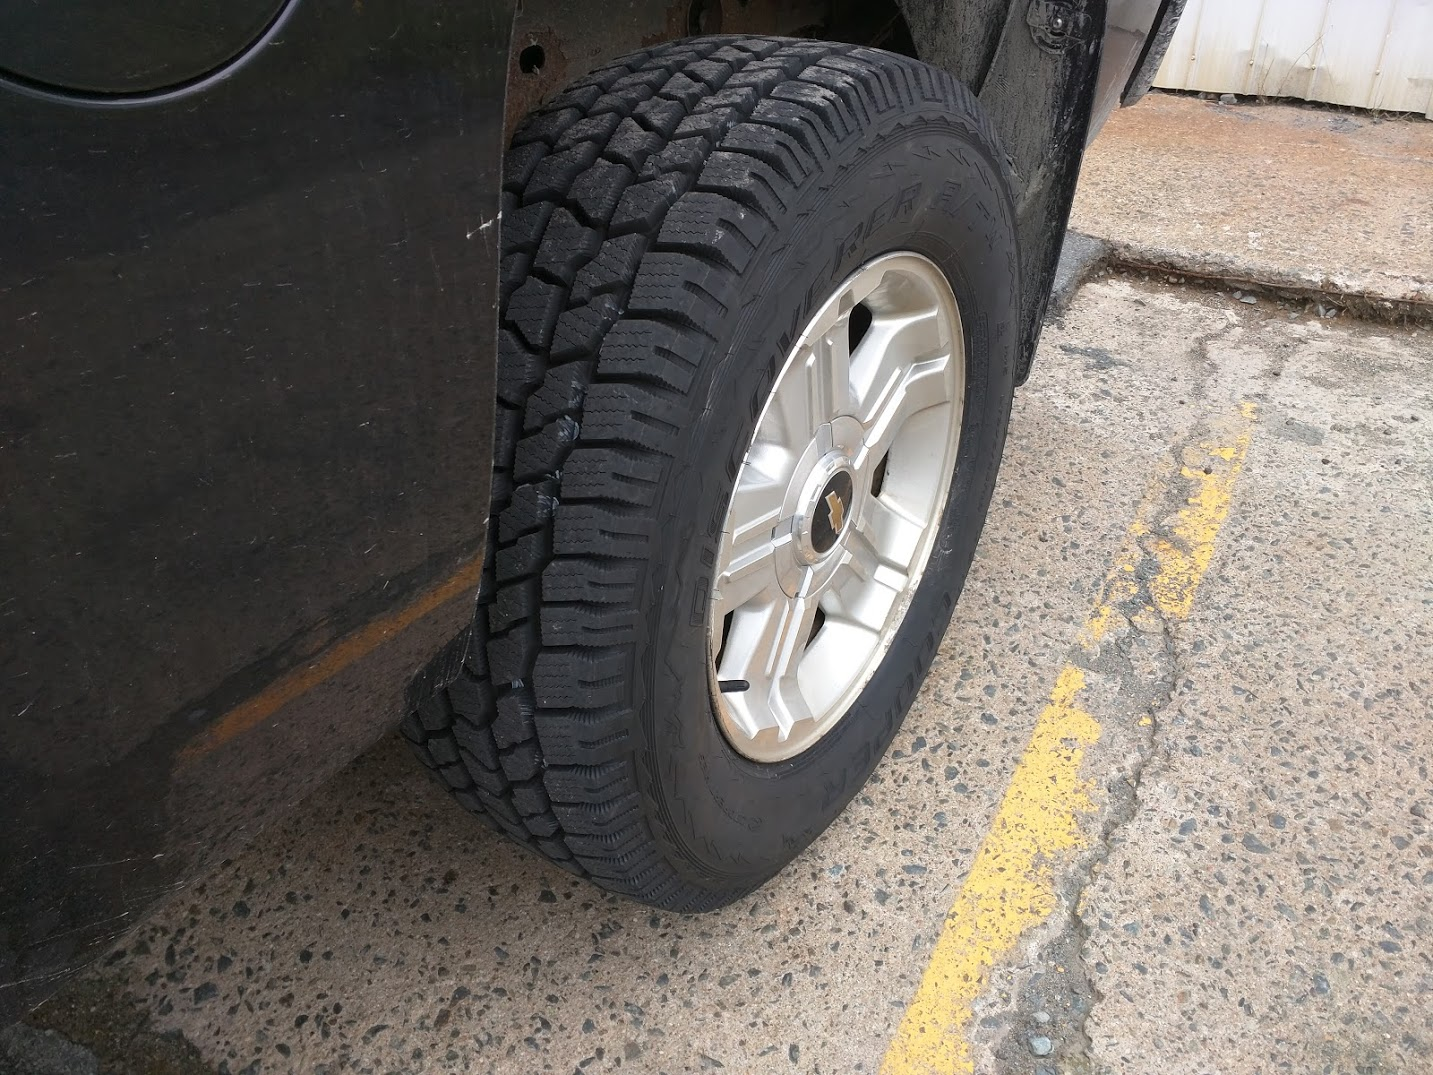 Buying All-Terrain Tires: Quick Tips